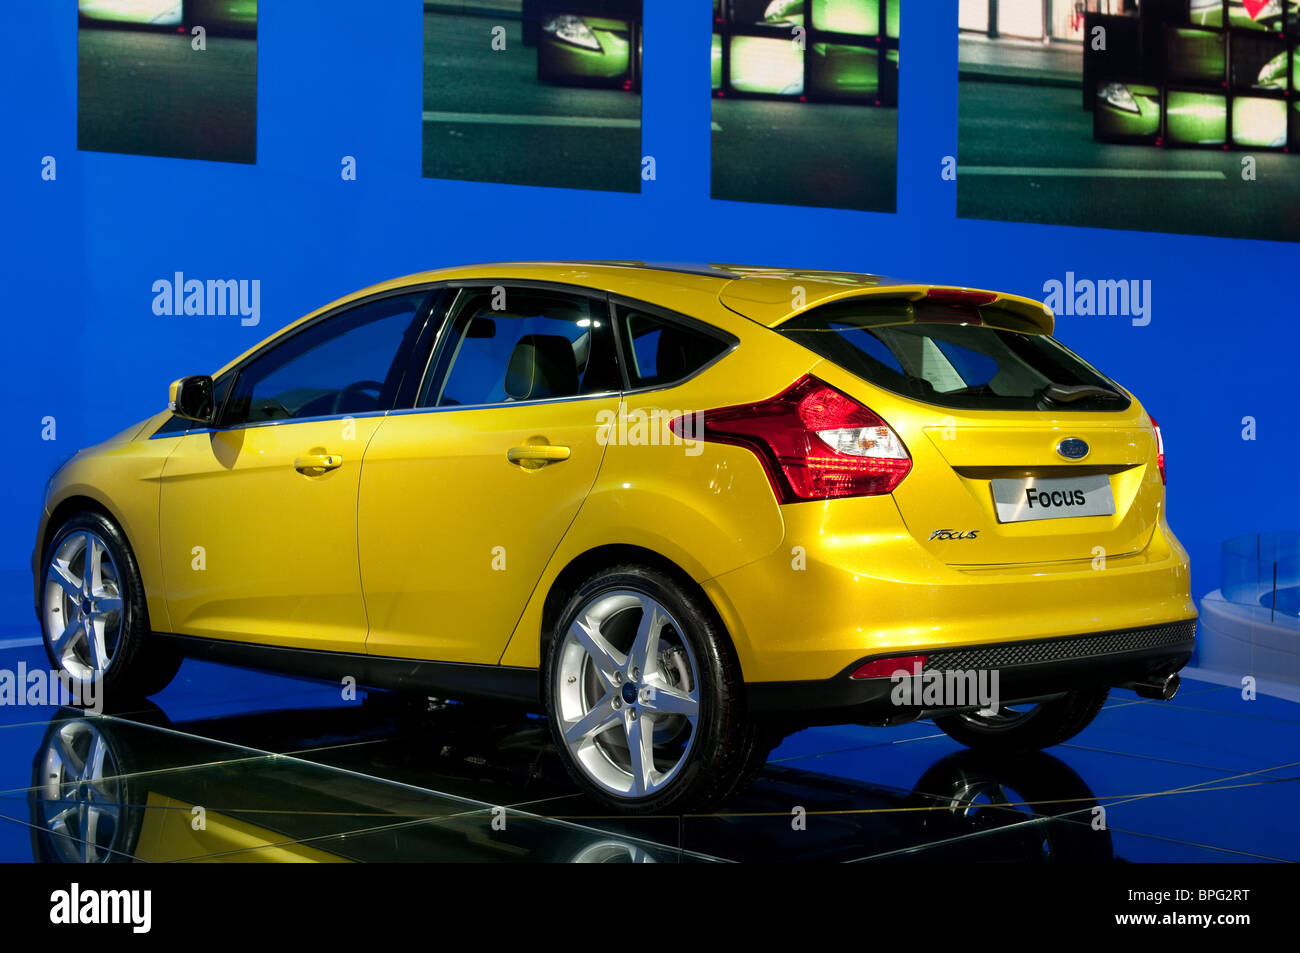 Ford Focus 2nd Generation >> Ford Focus Stock Photos & Ford Focus Stock Images - Alamy